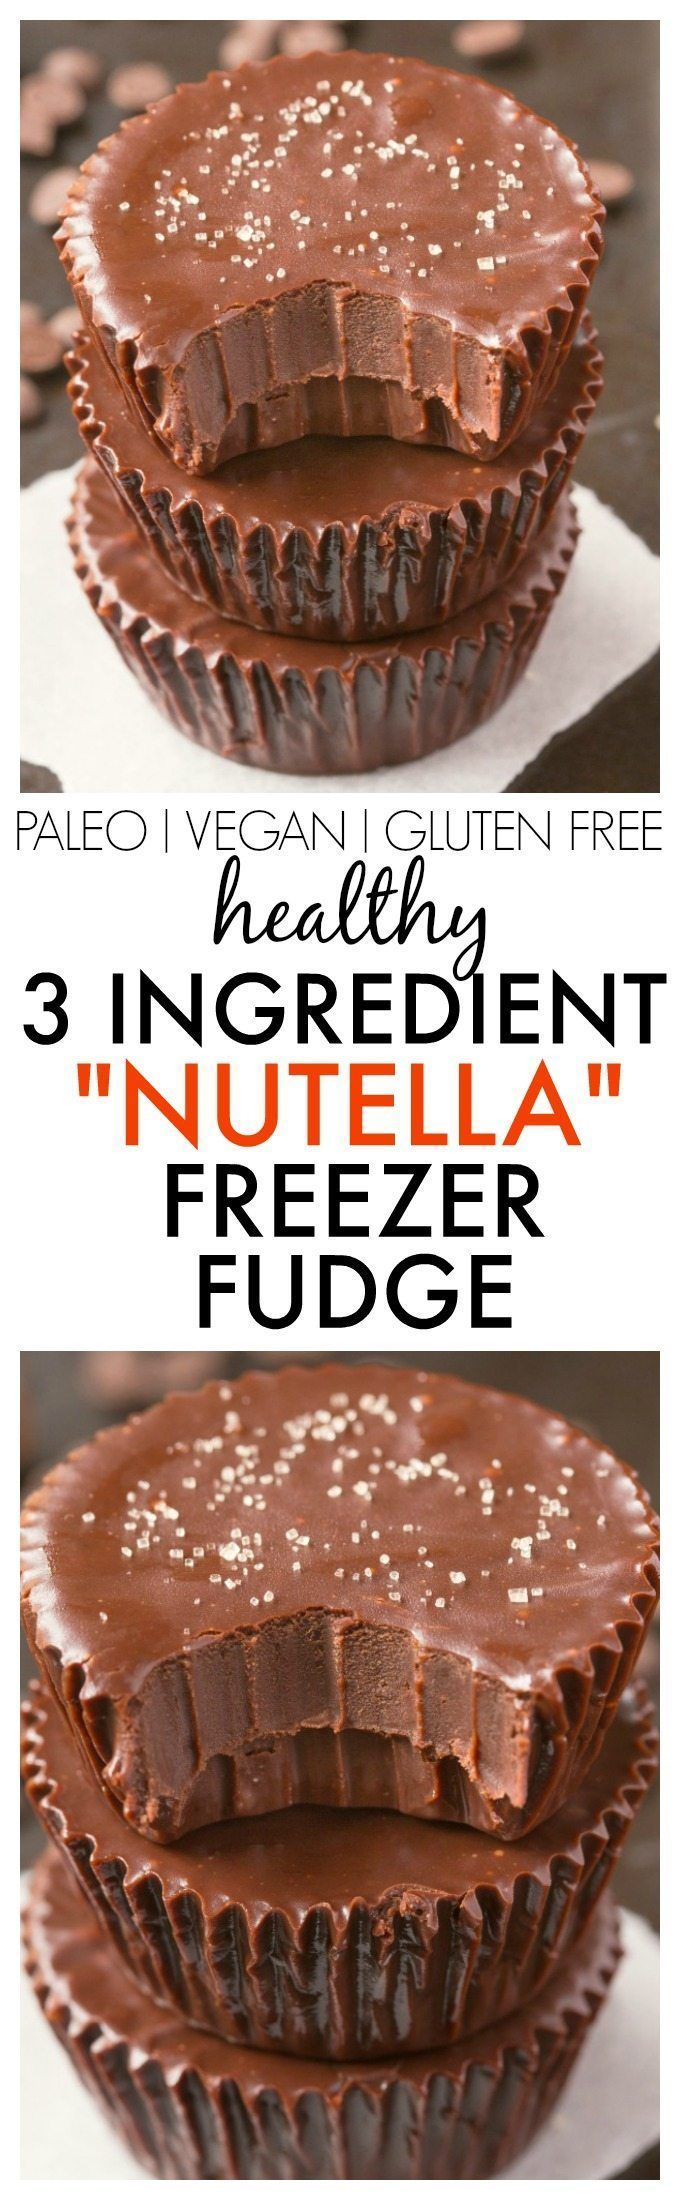 Healthy 3 Ingredient 'Nutella' Fudge Cups- Smooth, creamy and melt-in-your mouth fudge which takes minutes and has NO dairy, refined sugar or butter but you'd never tell- A delicious snack or dessert! {vegan, gluten free, paleo recipe}-